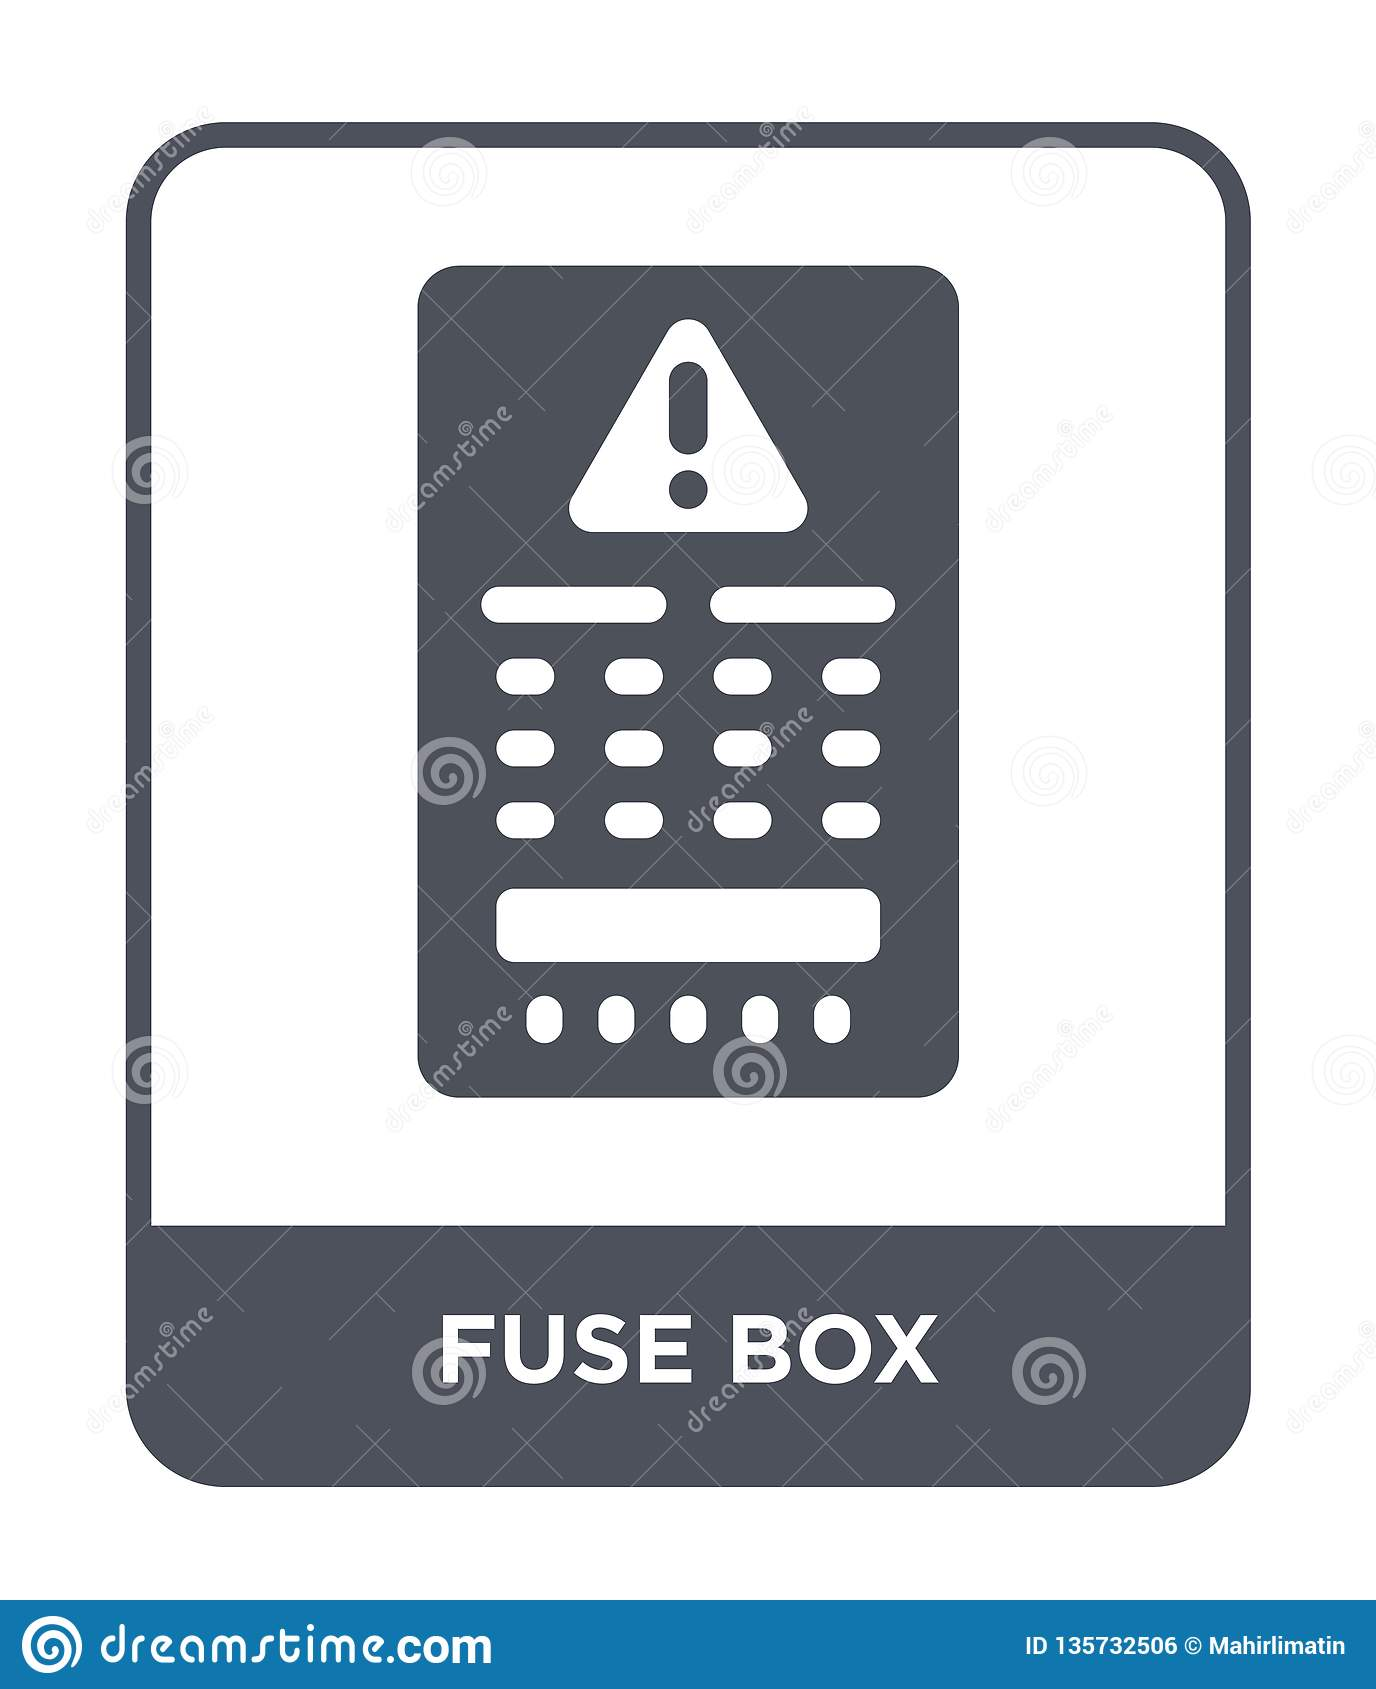 hight resolution of fuse box icon in trendy design style fuse box icon isolated on white background fuse box vector icon simple and modern flat symbol for web site mobile